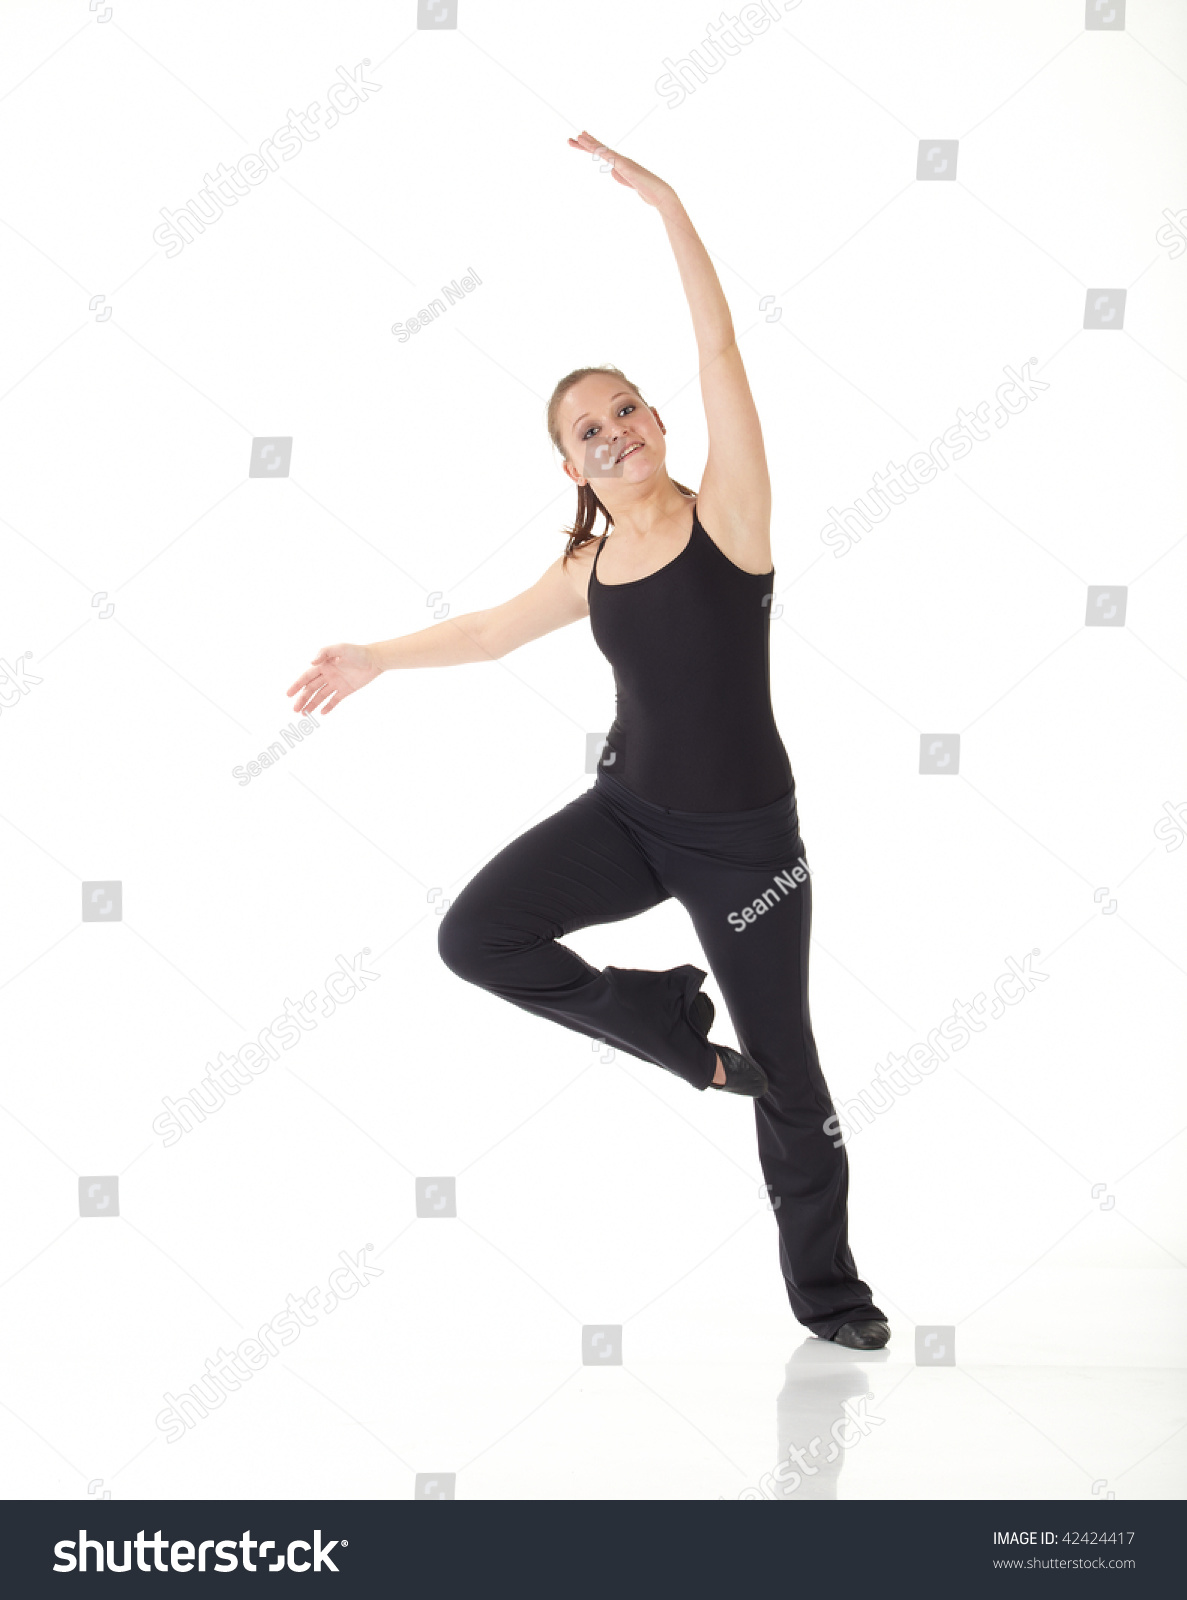 jazz dance background